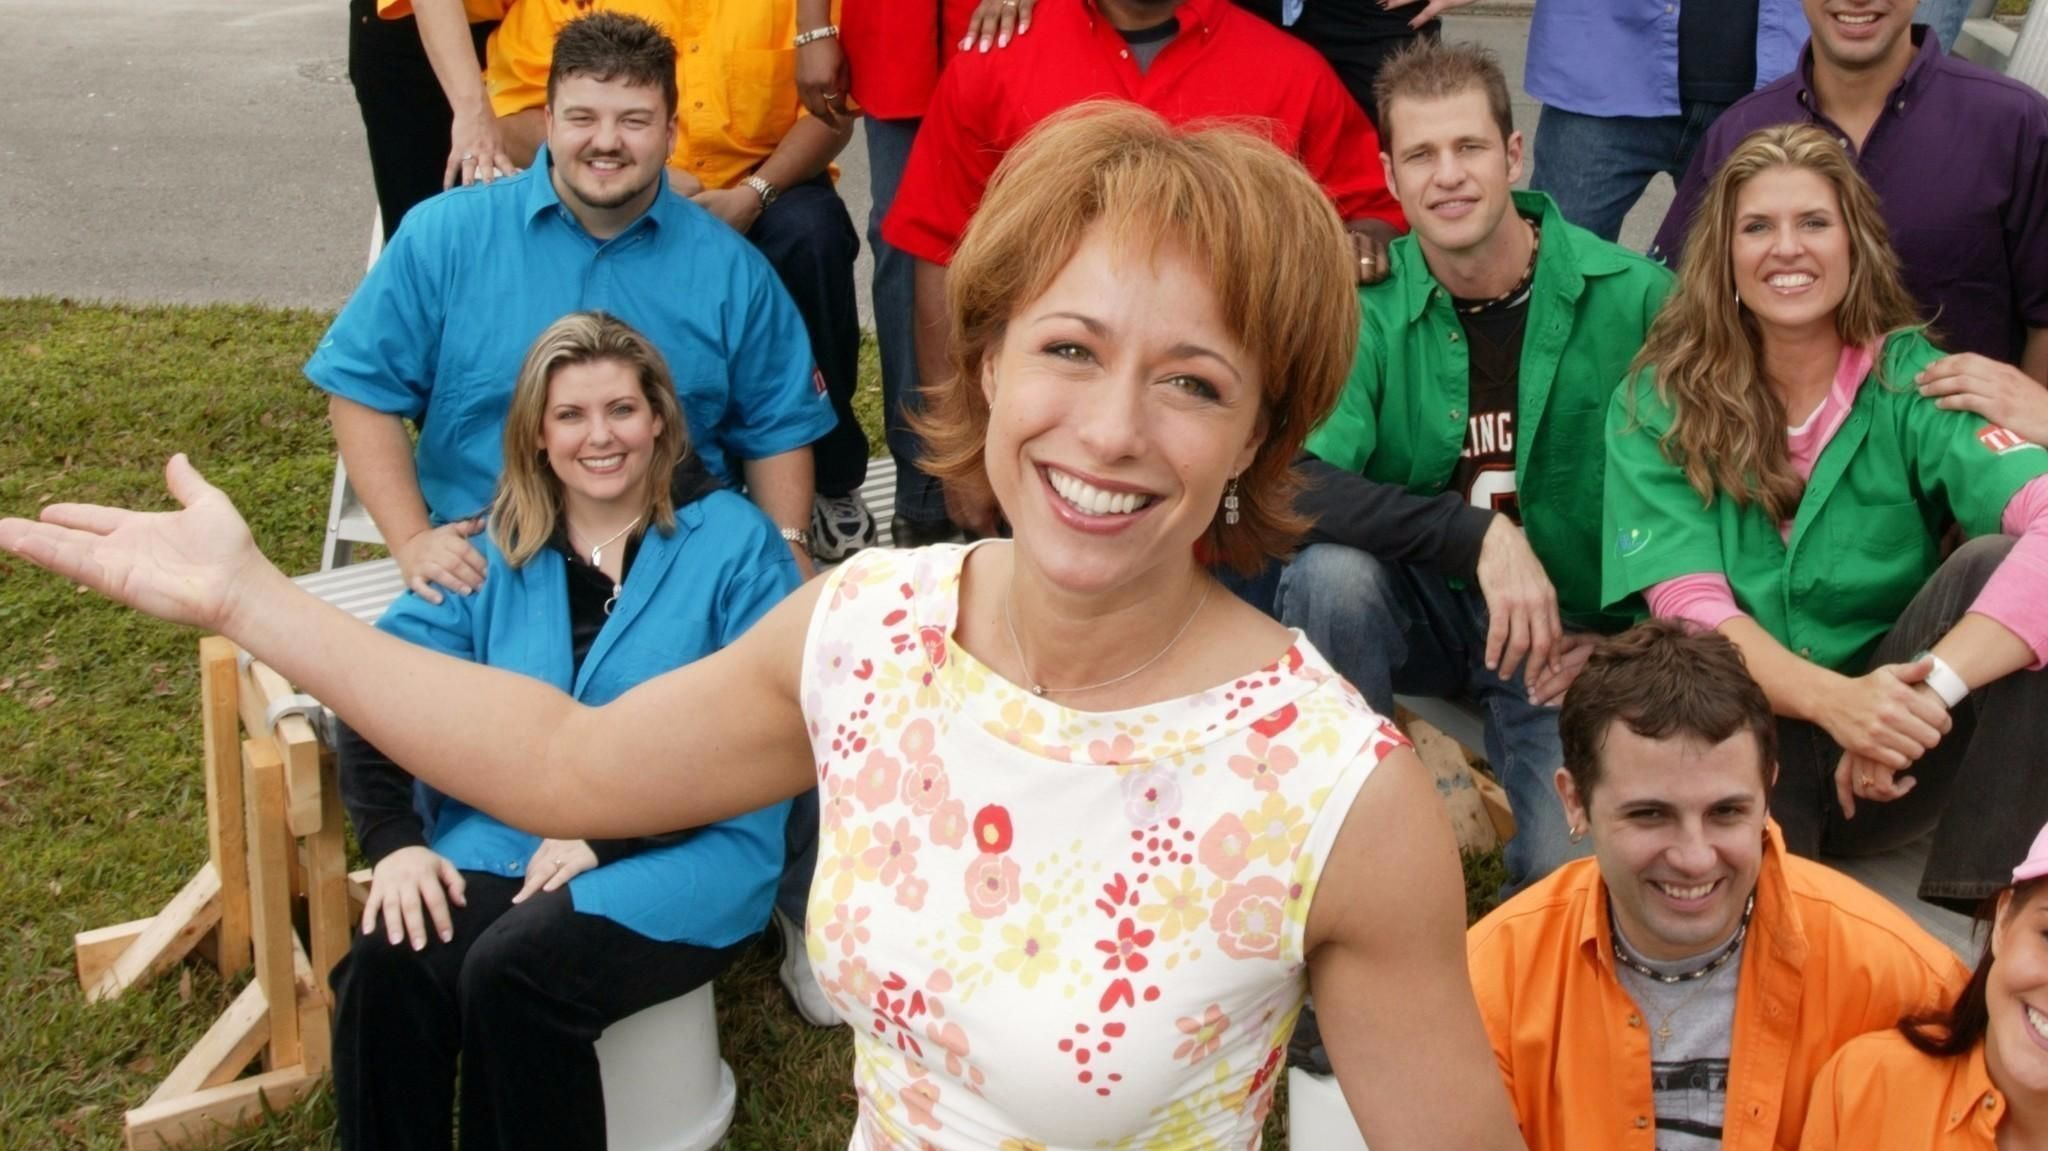 TLC's 'Trading Spaces' Filming In Baltimore This Month